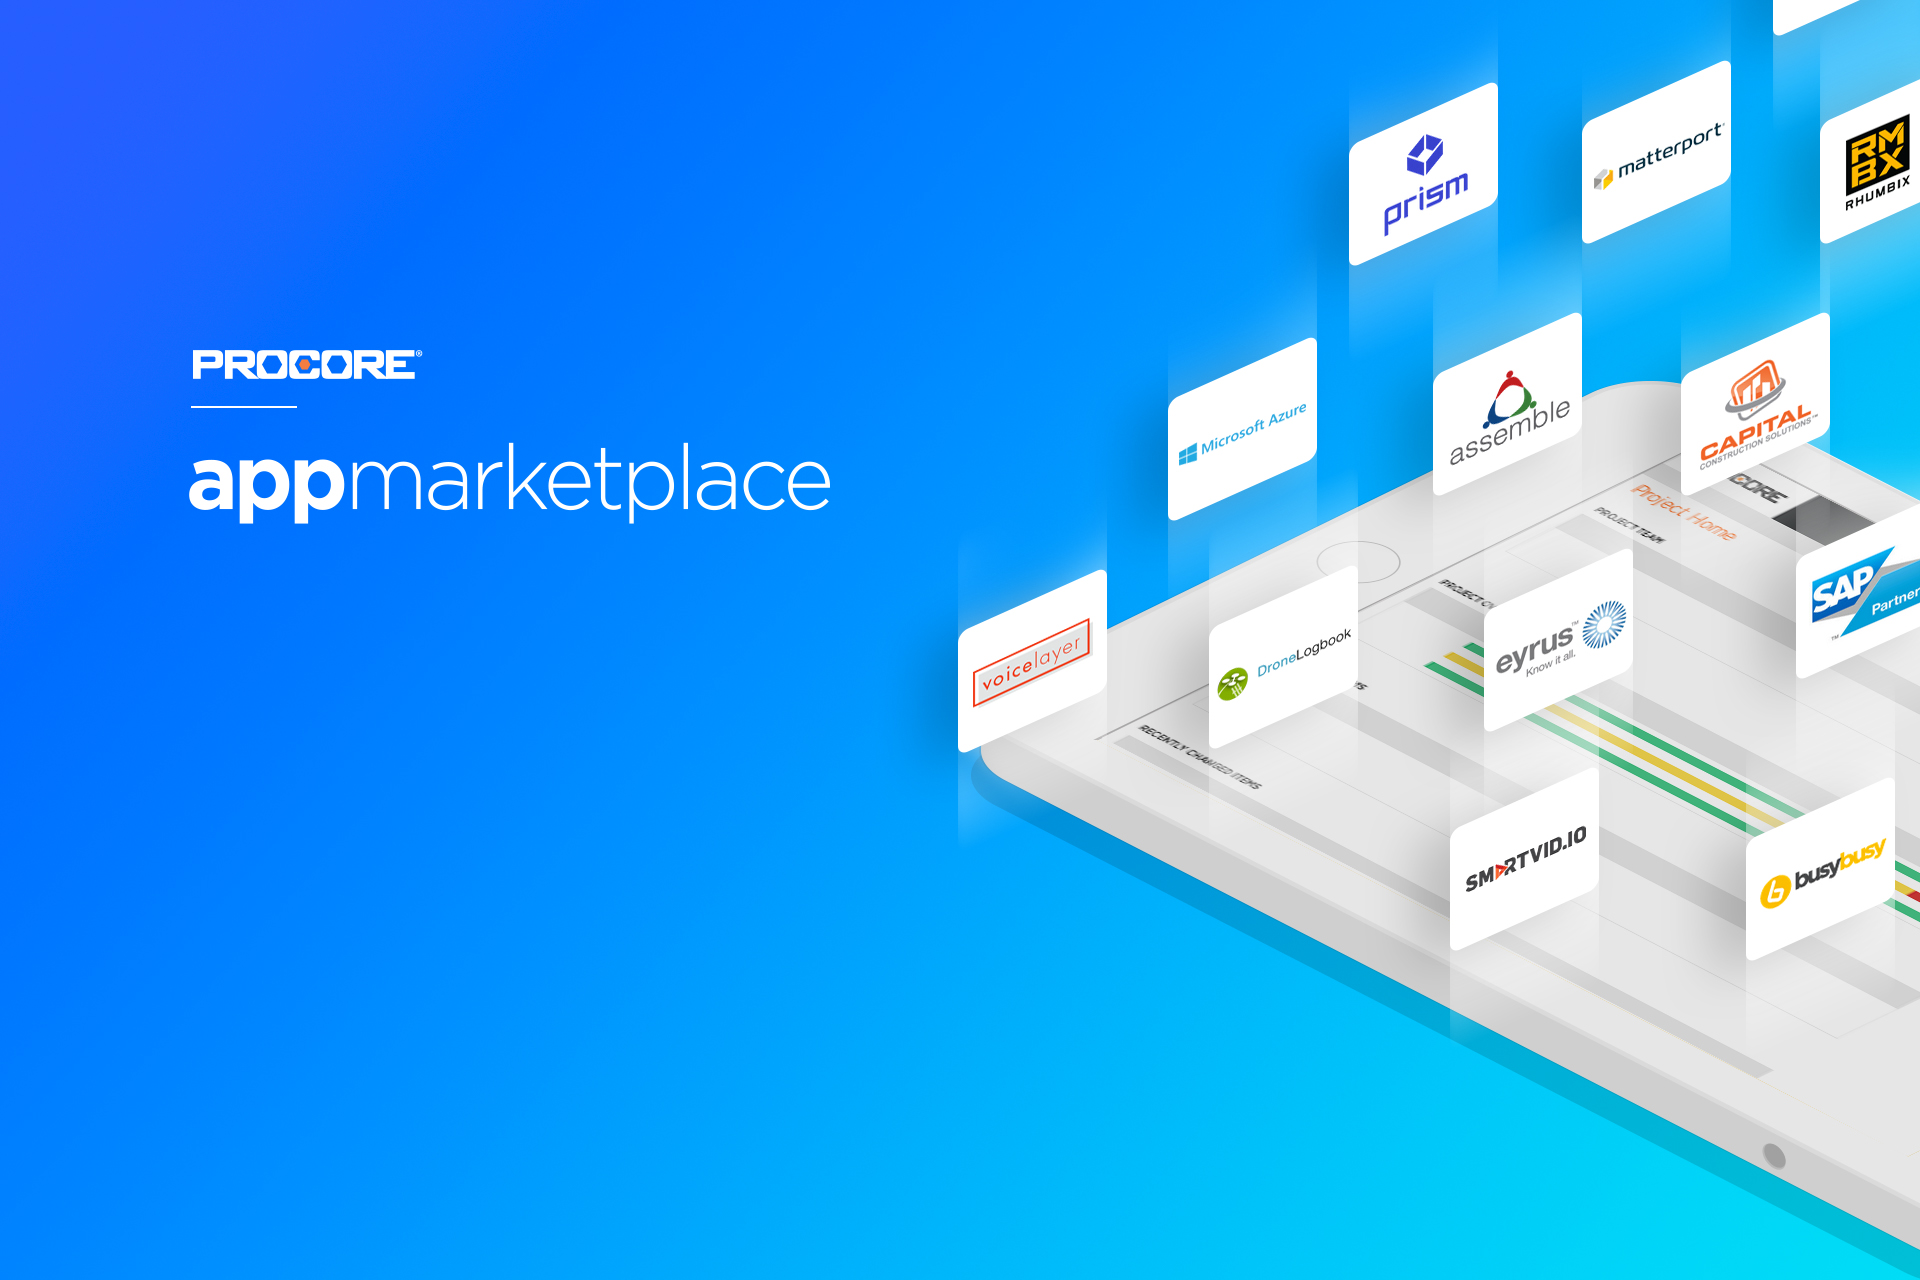 App marketplace page 1 news and updates from procore for House construction app